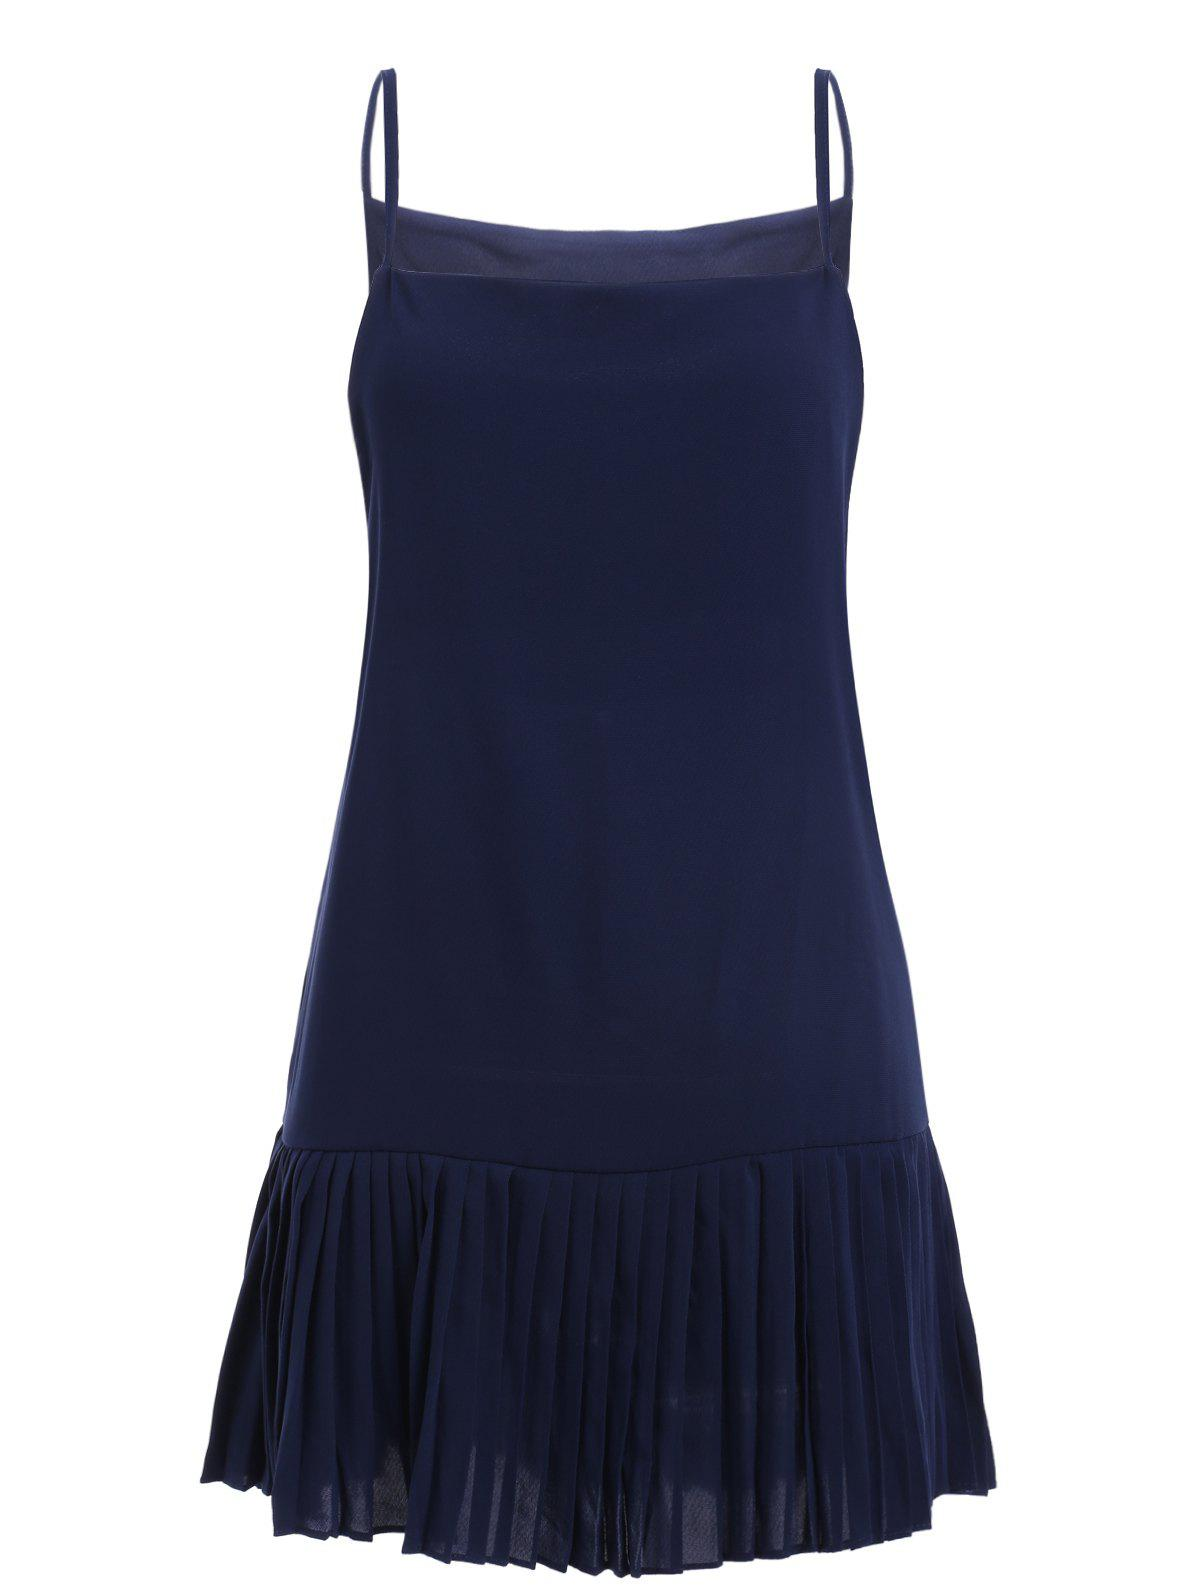 Simple Design Solid Color Spaghetti Strap Pleated Dress Women ONE SIZE(FIT SIZE XS TO M)